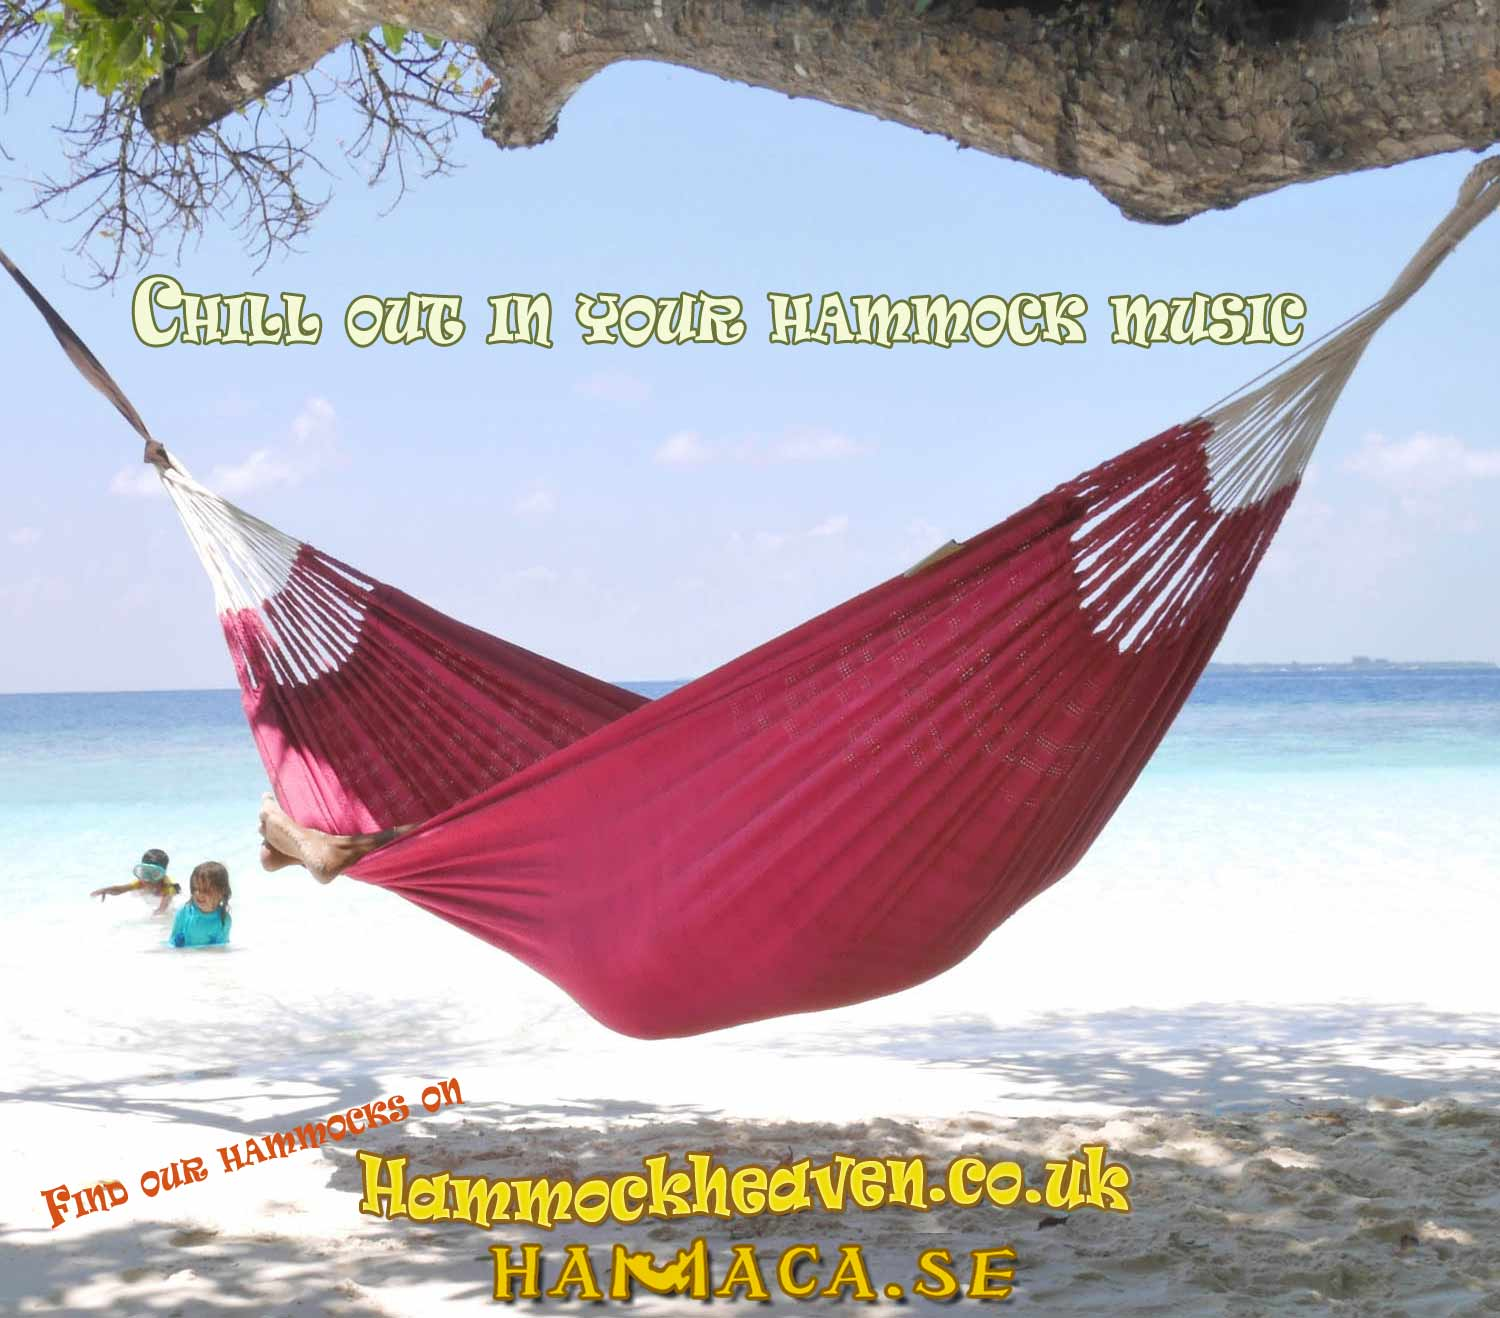 Hammocks etc: Chill out in your hammock music